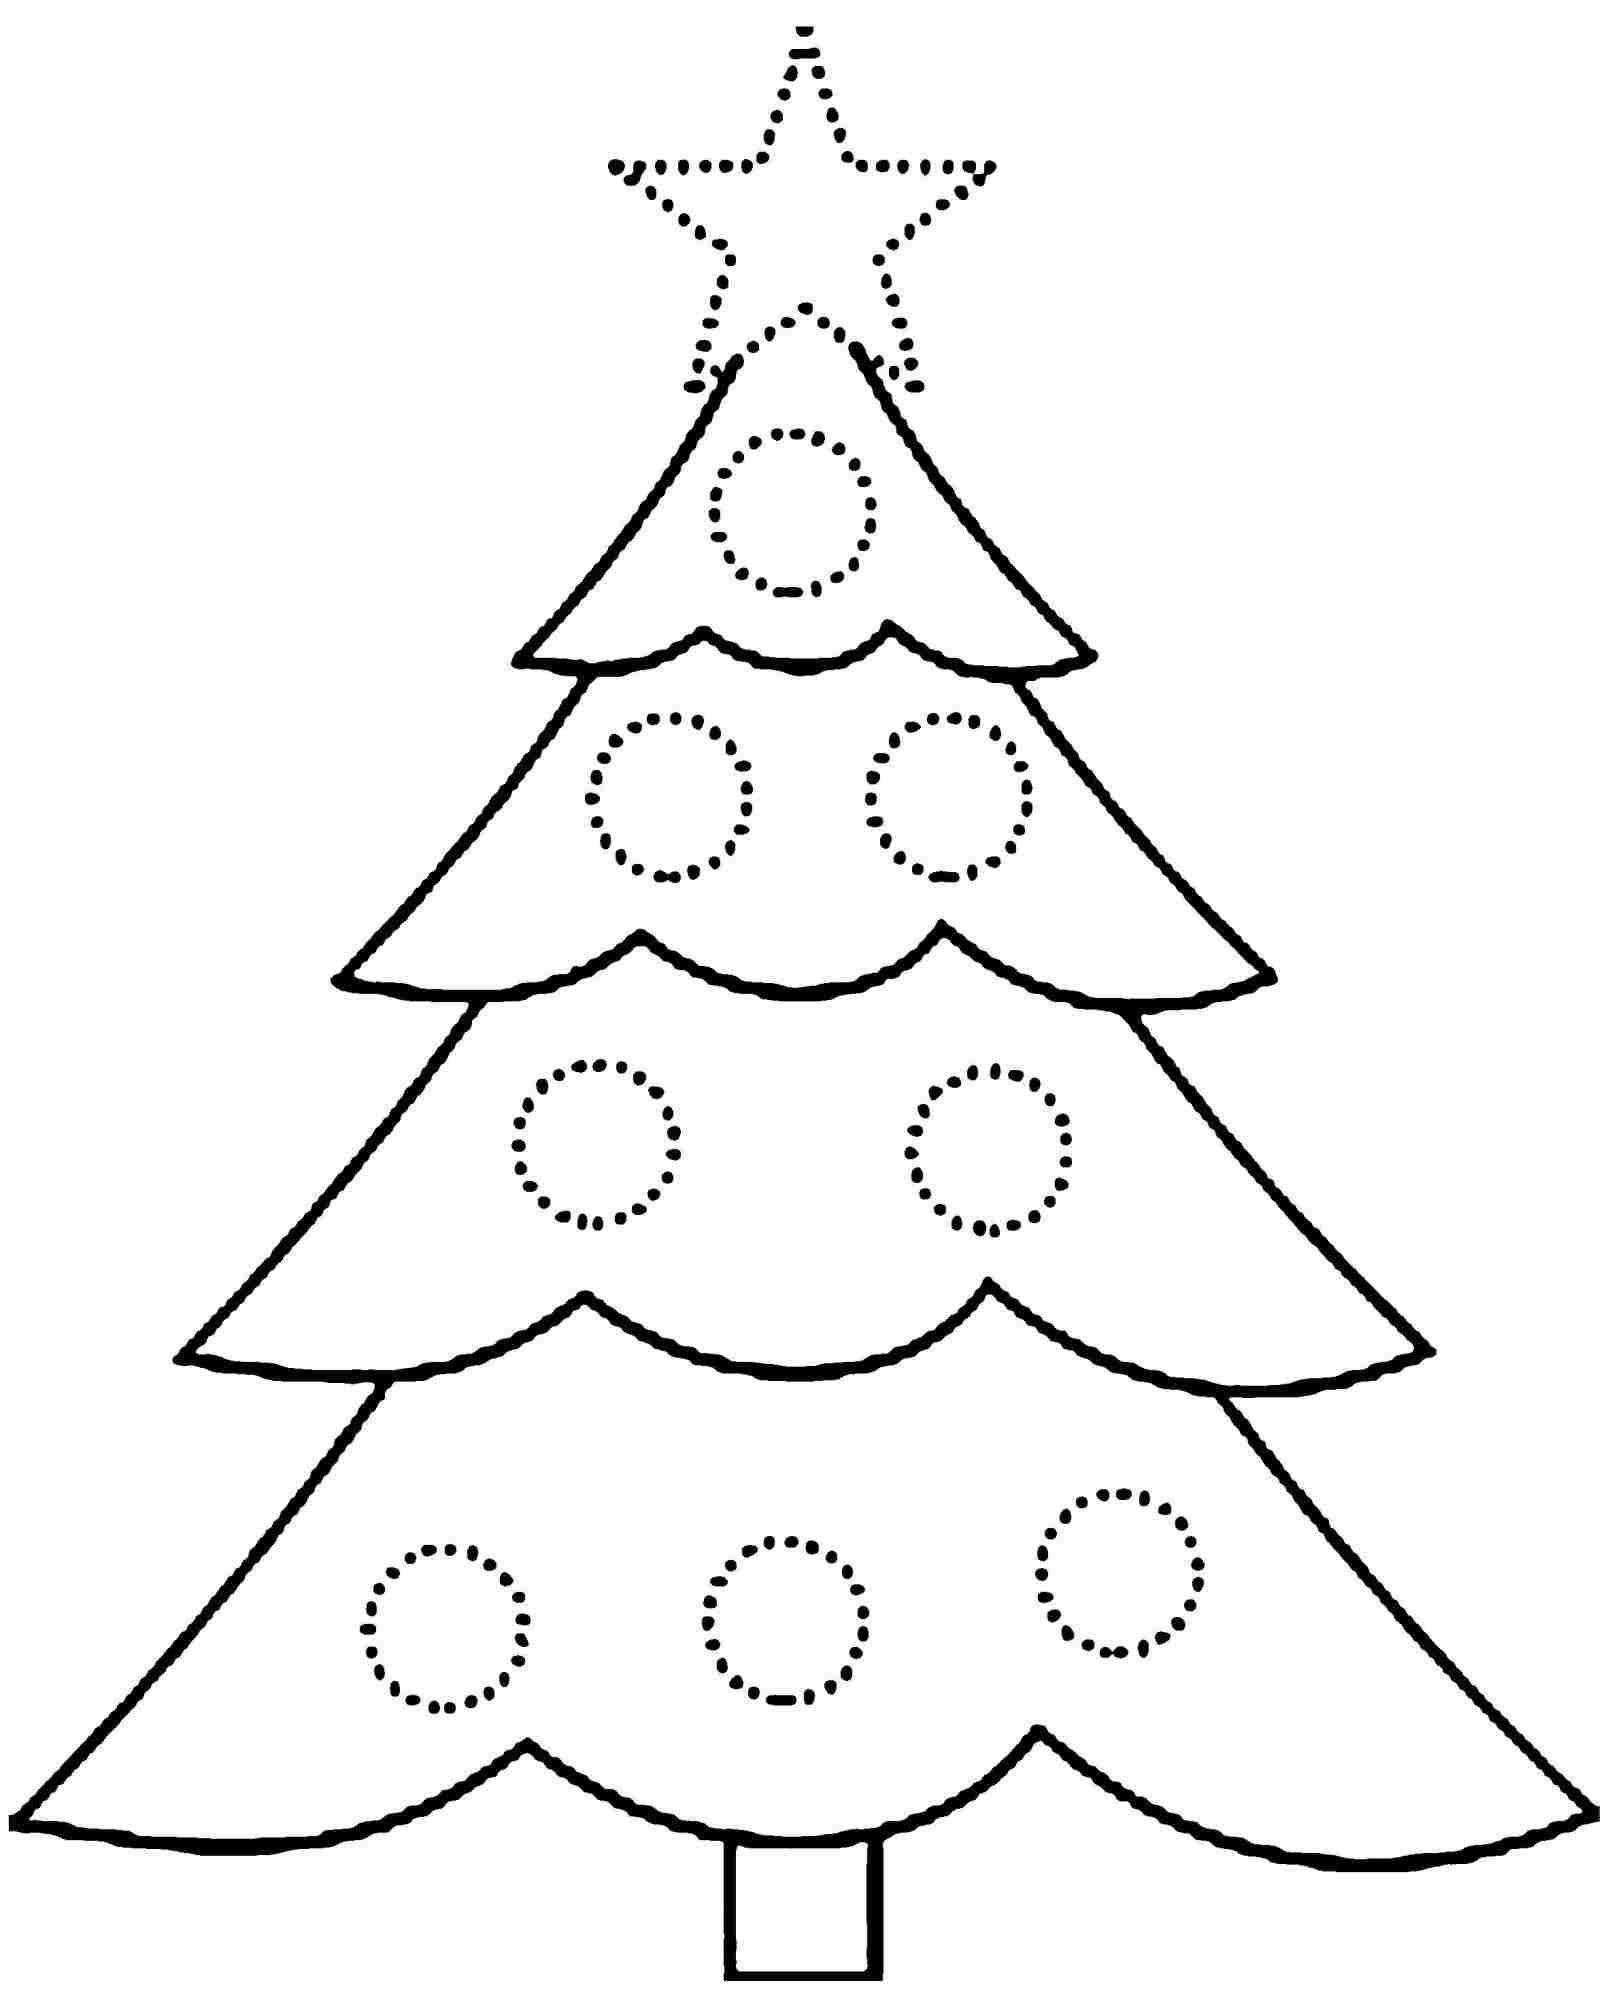 Coloring Book World ~ Free Printable Christmas Tree Coloring Pages - Tree Coloring Pages Free Printable